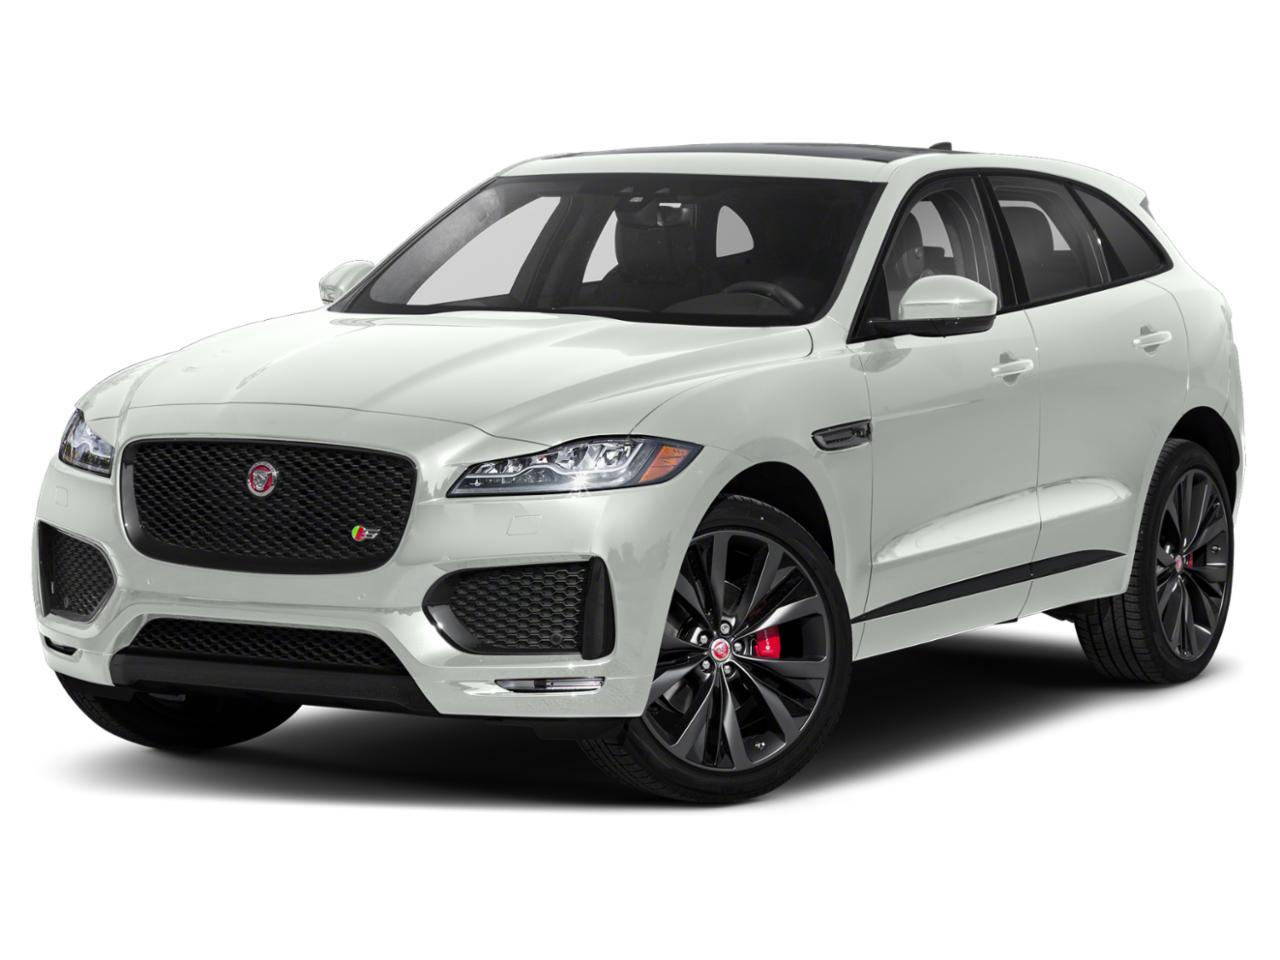 2020 Jaguar F-PACE Vehicle Photo in Charlotte, NC 28227